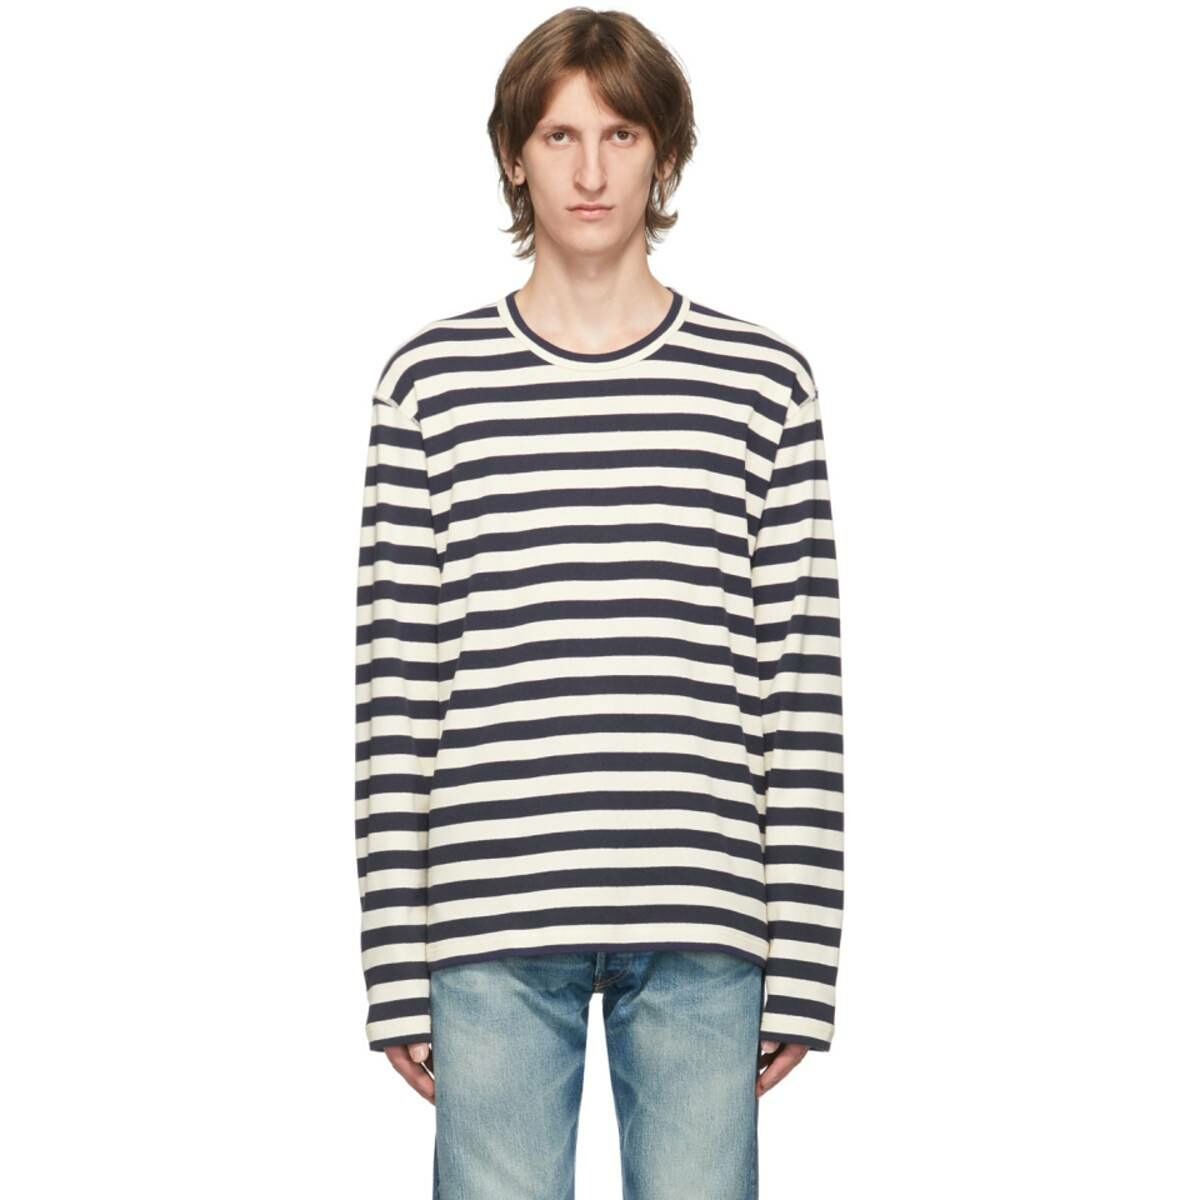 Junya Watanabe Blue and White Stripe Long Sleeve T-Shirt Ssense USA MEN Men FASHION Mens T-SHIRTS